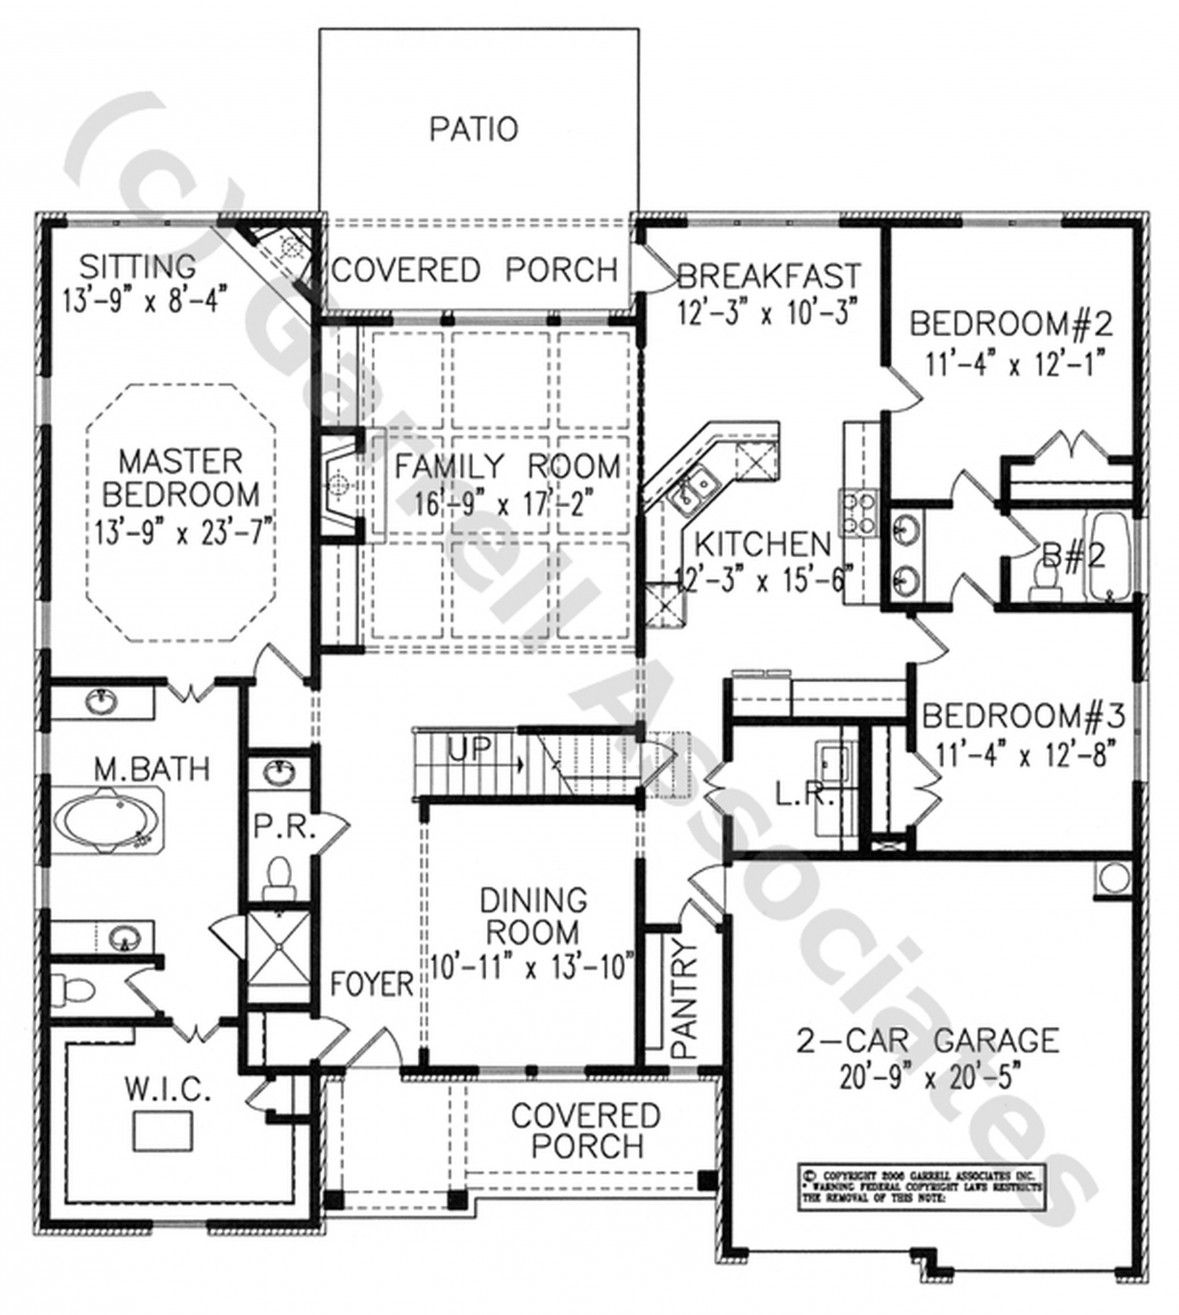 Floor Plan Nice Black White House Plans Winning Bedrooms Modern Style Also Free On Ranch Style House Plans Minecraft Modern House Blueprints Unique Floor Plans